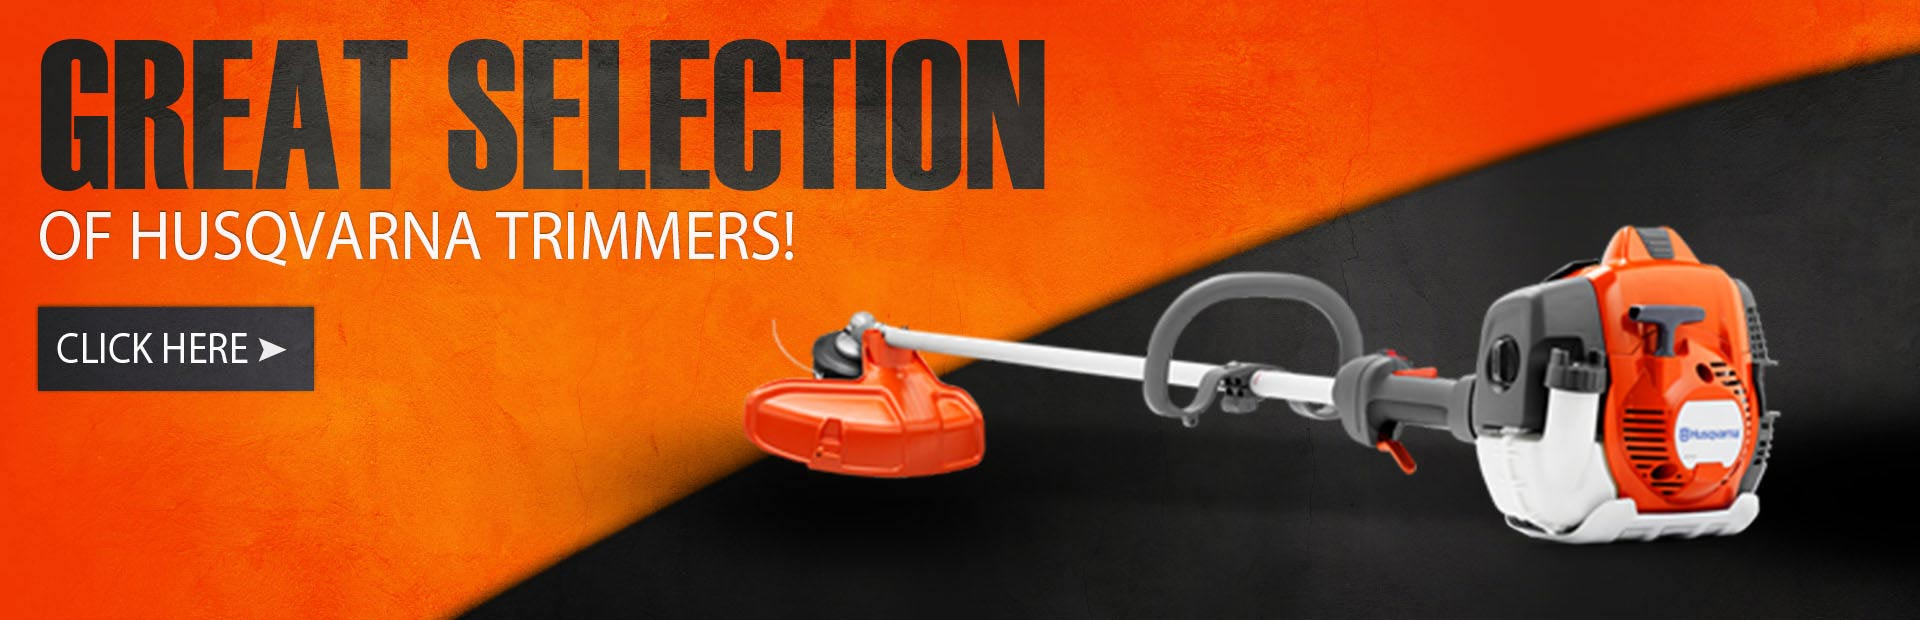 We have a great selection of Husqvarna trimmers! Click here to view them.